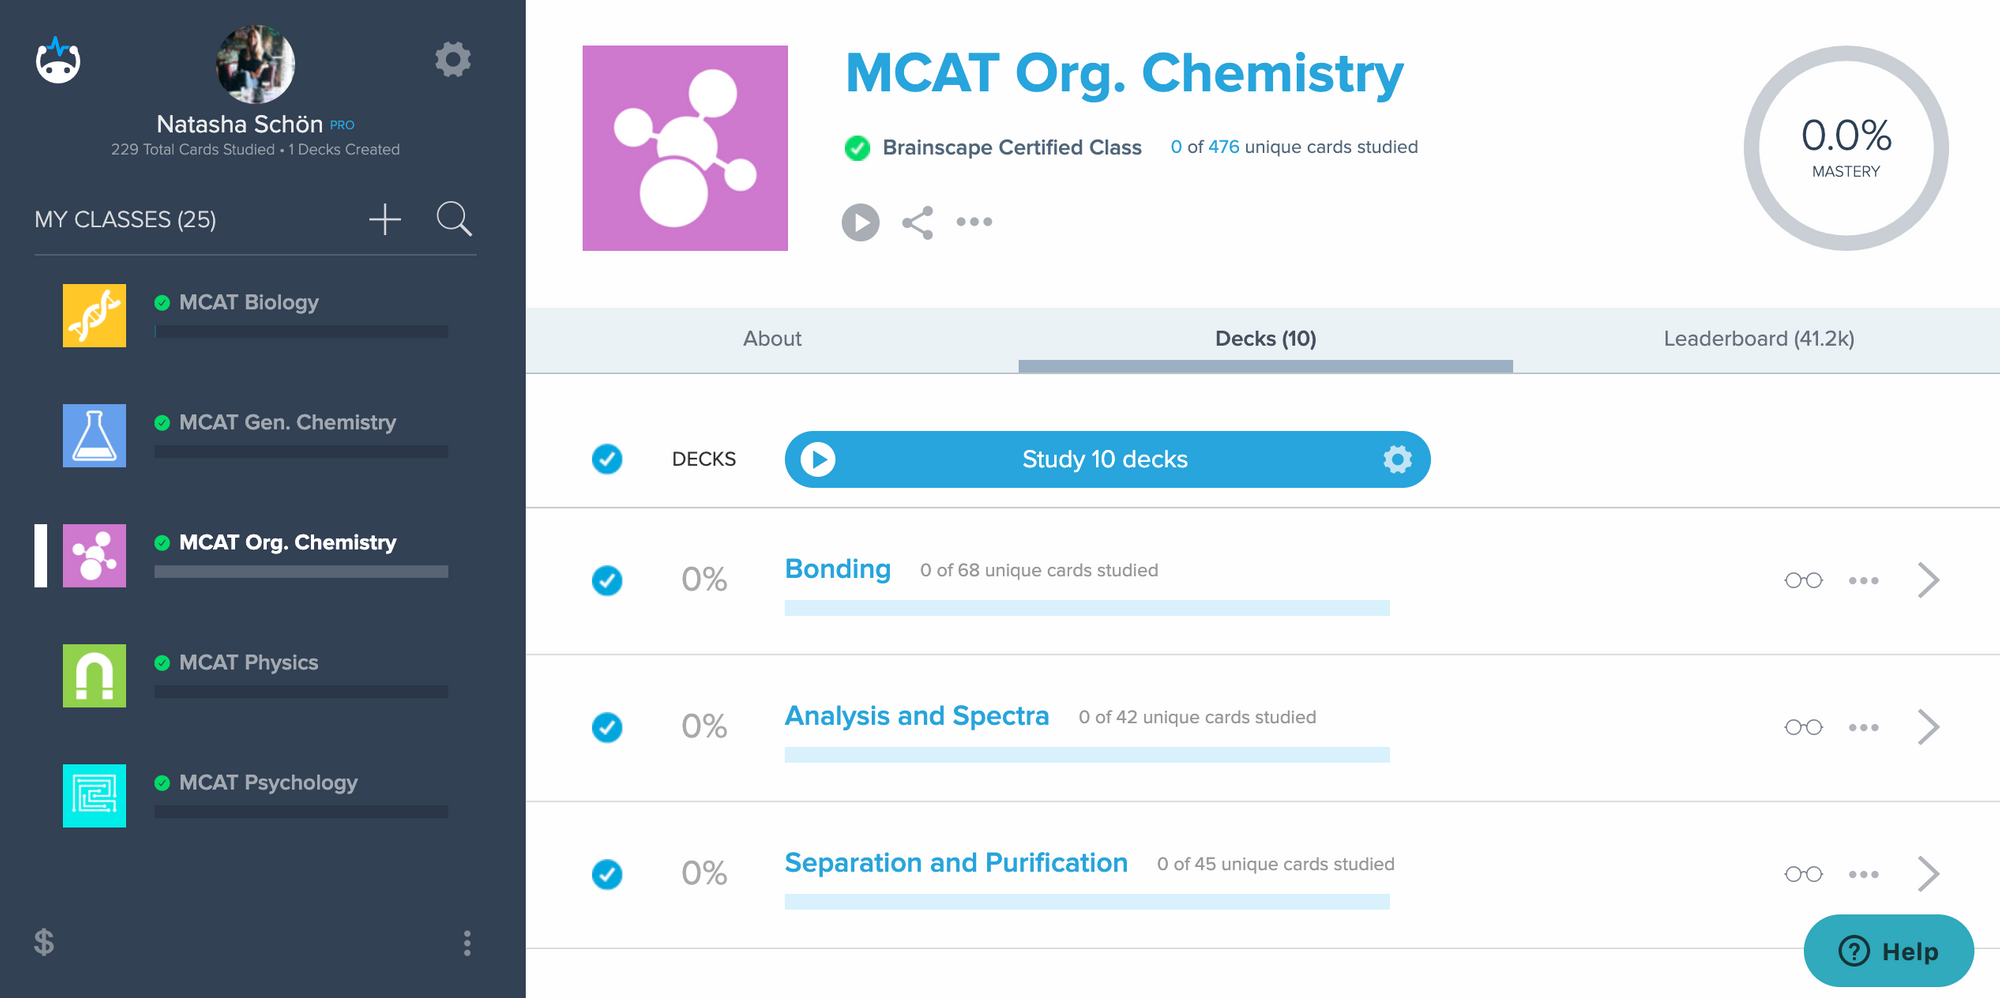 Brainscape'S dashboard of organic chemistry MCAT